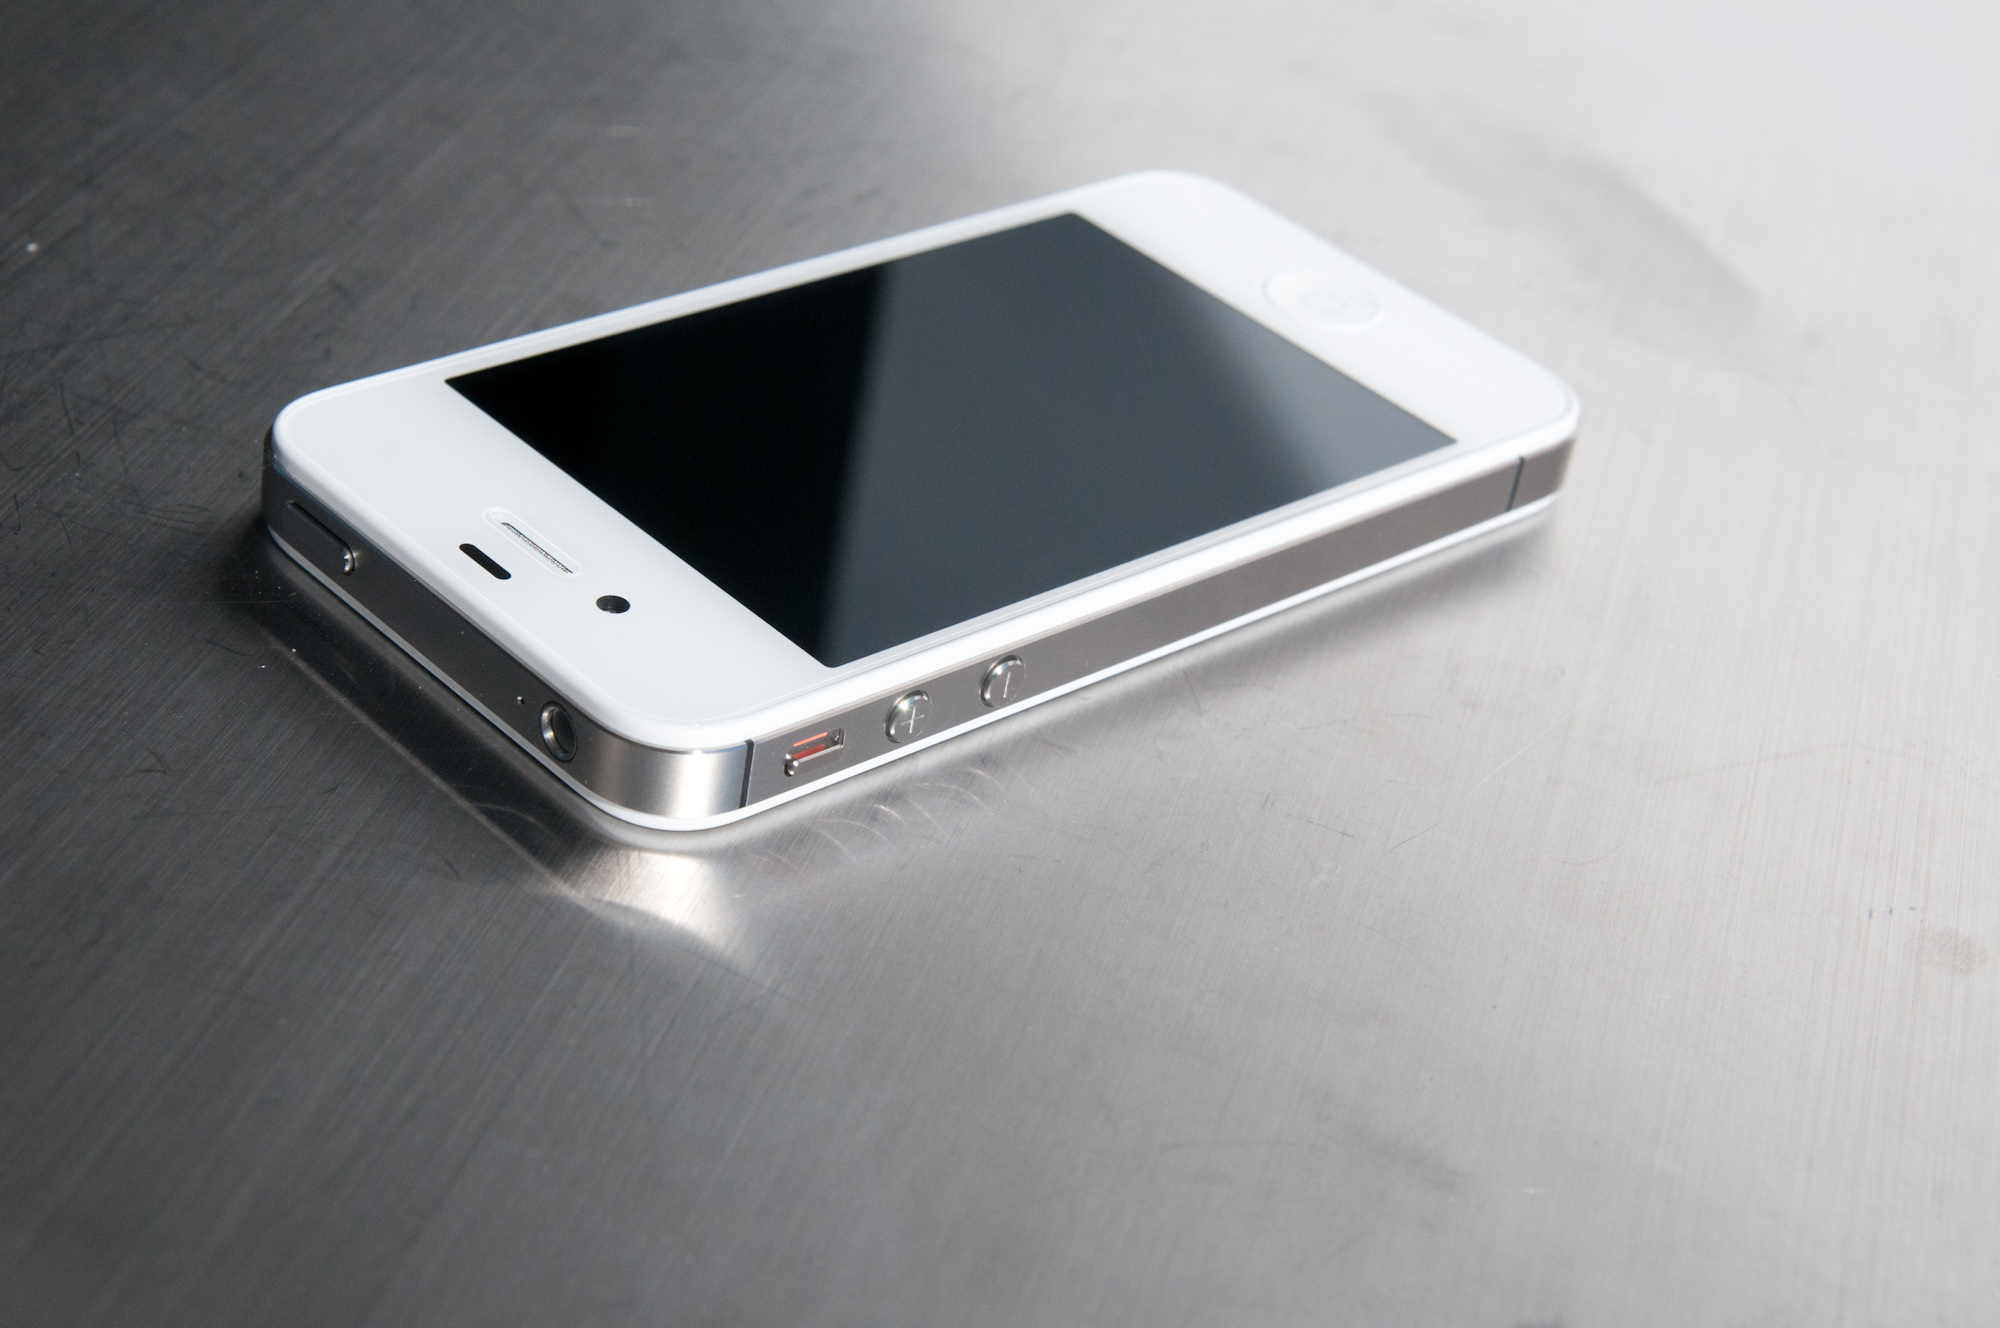 AnandTech   Apple iPhone 4S  Thoroughly Reviewed